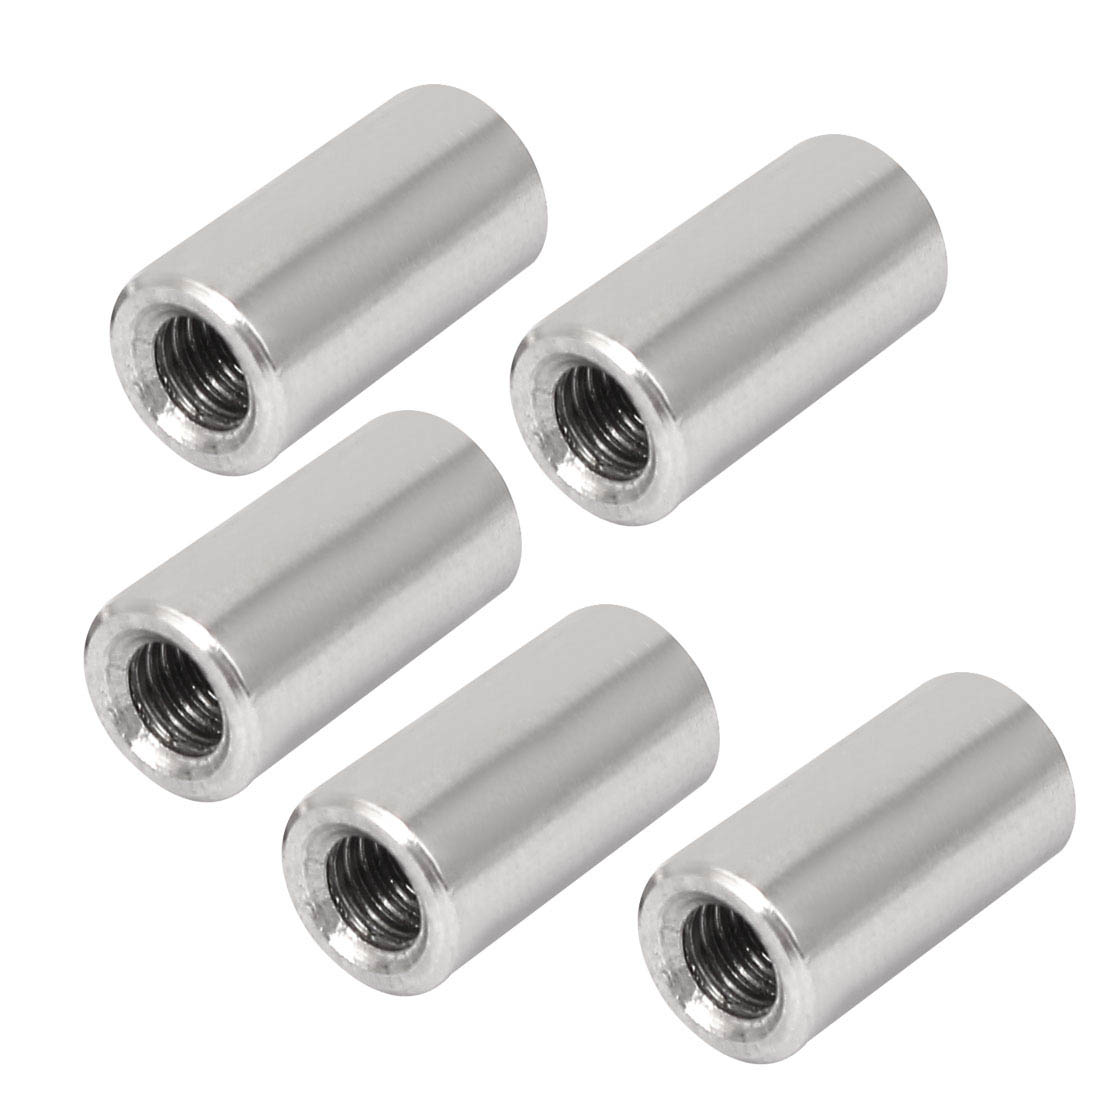 Round Connector Nuts 304 stainless steel Threaded Sleeve Rod bar Stud Round Connector Nuts 10Pcs cootelili 36 40 plus size spring casual flats women shoes solid slip on ladies loafers butterfly knot pointed toe soft shoes